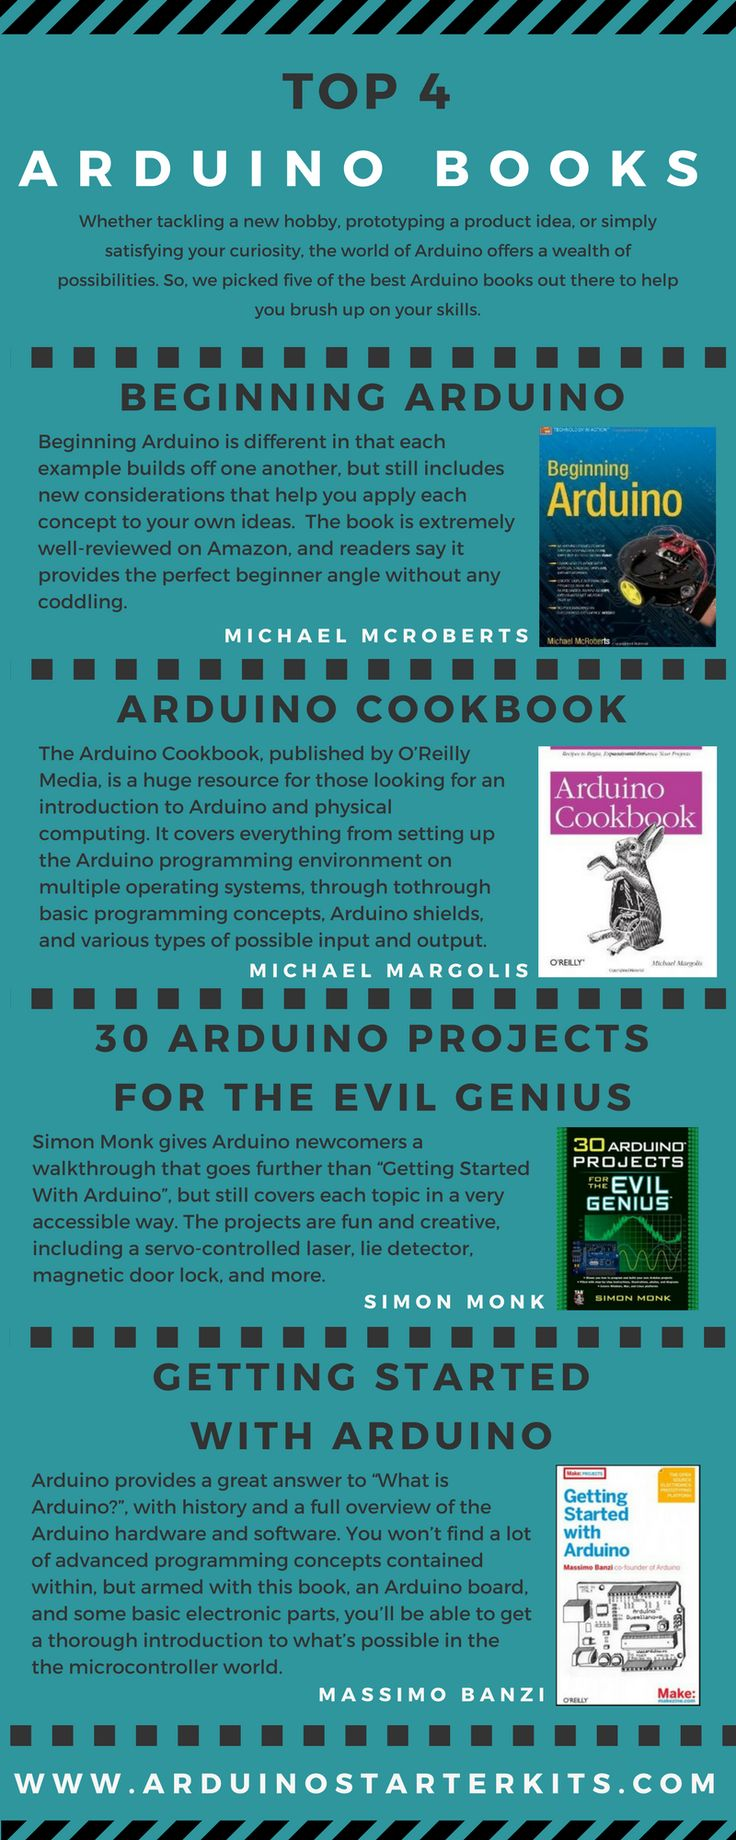 In this infographic, I have listed four #Arduino books. These books are useful f...